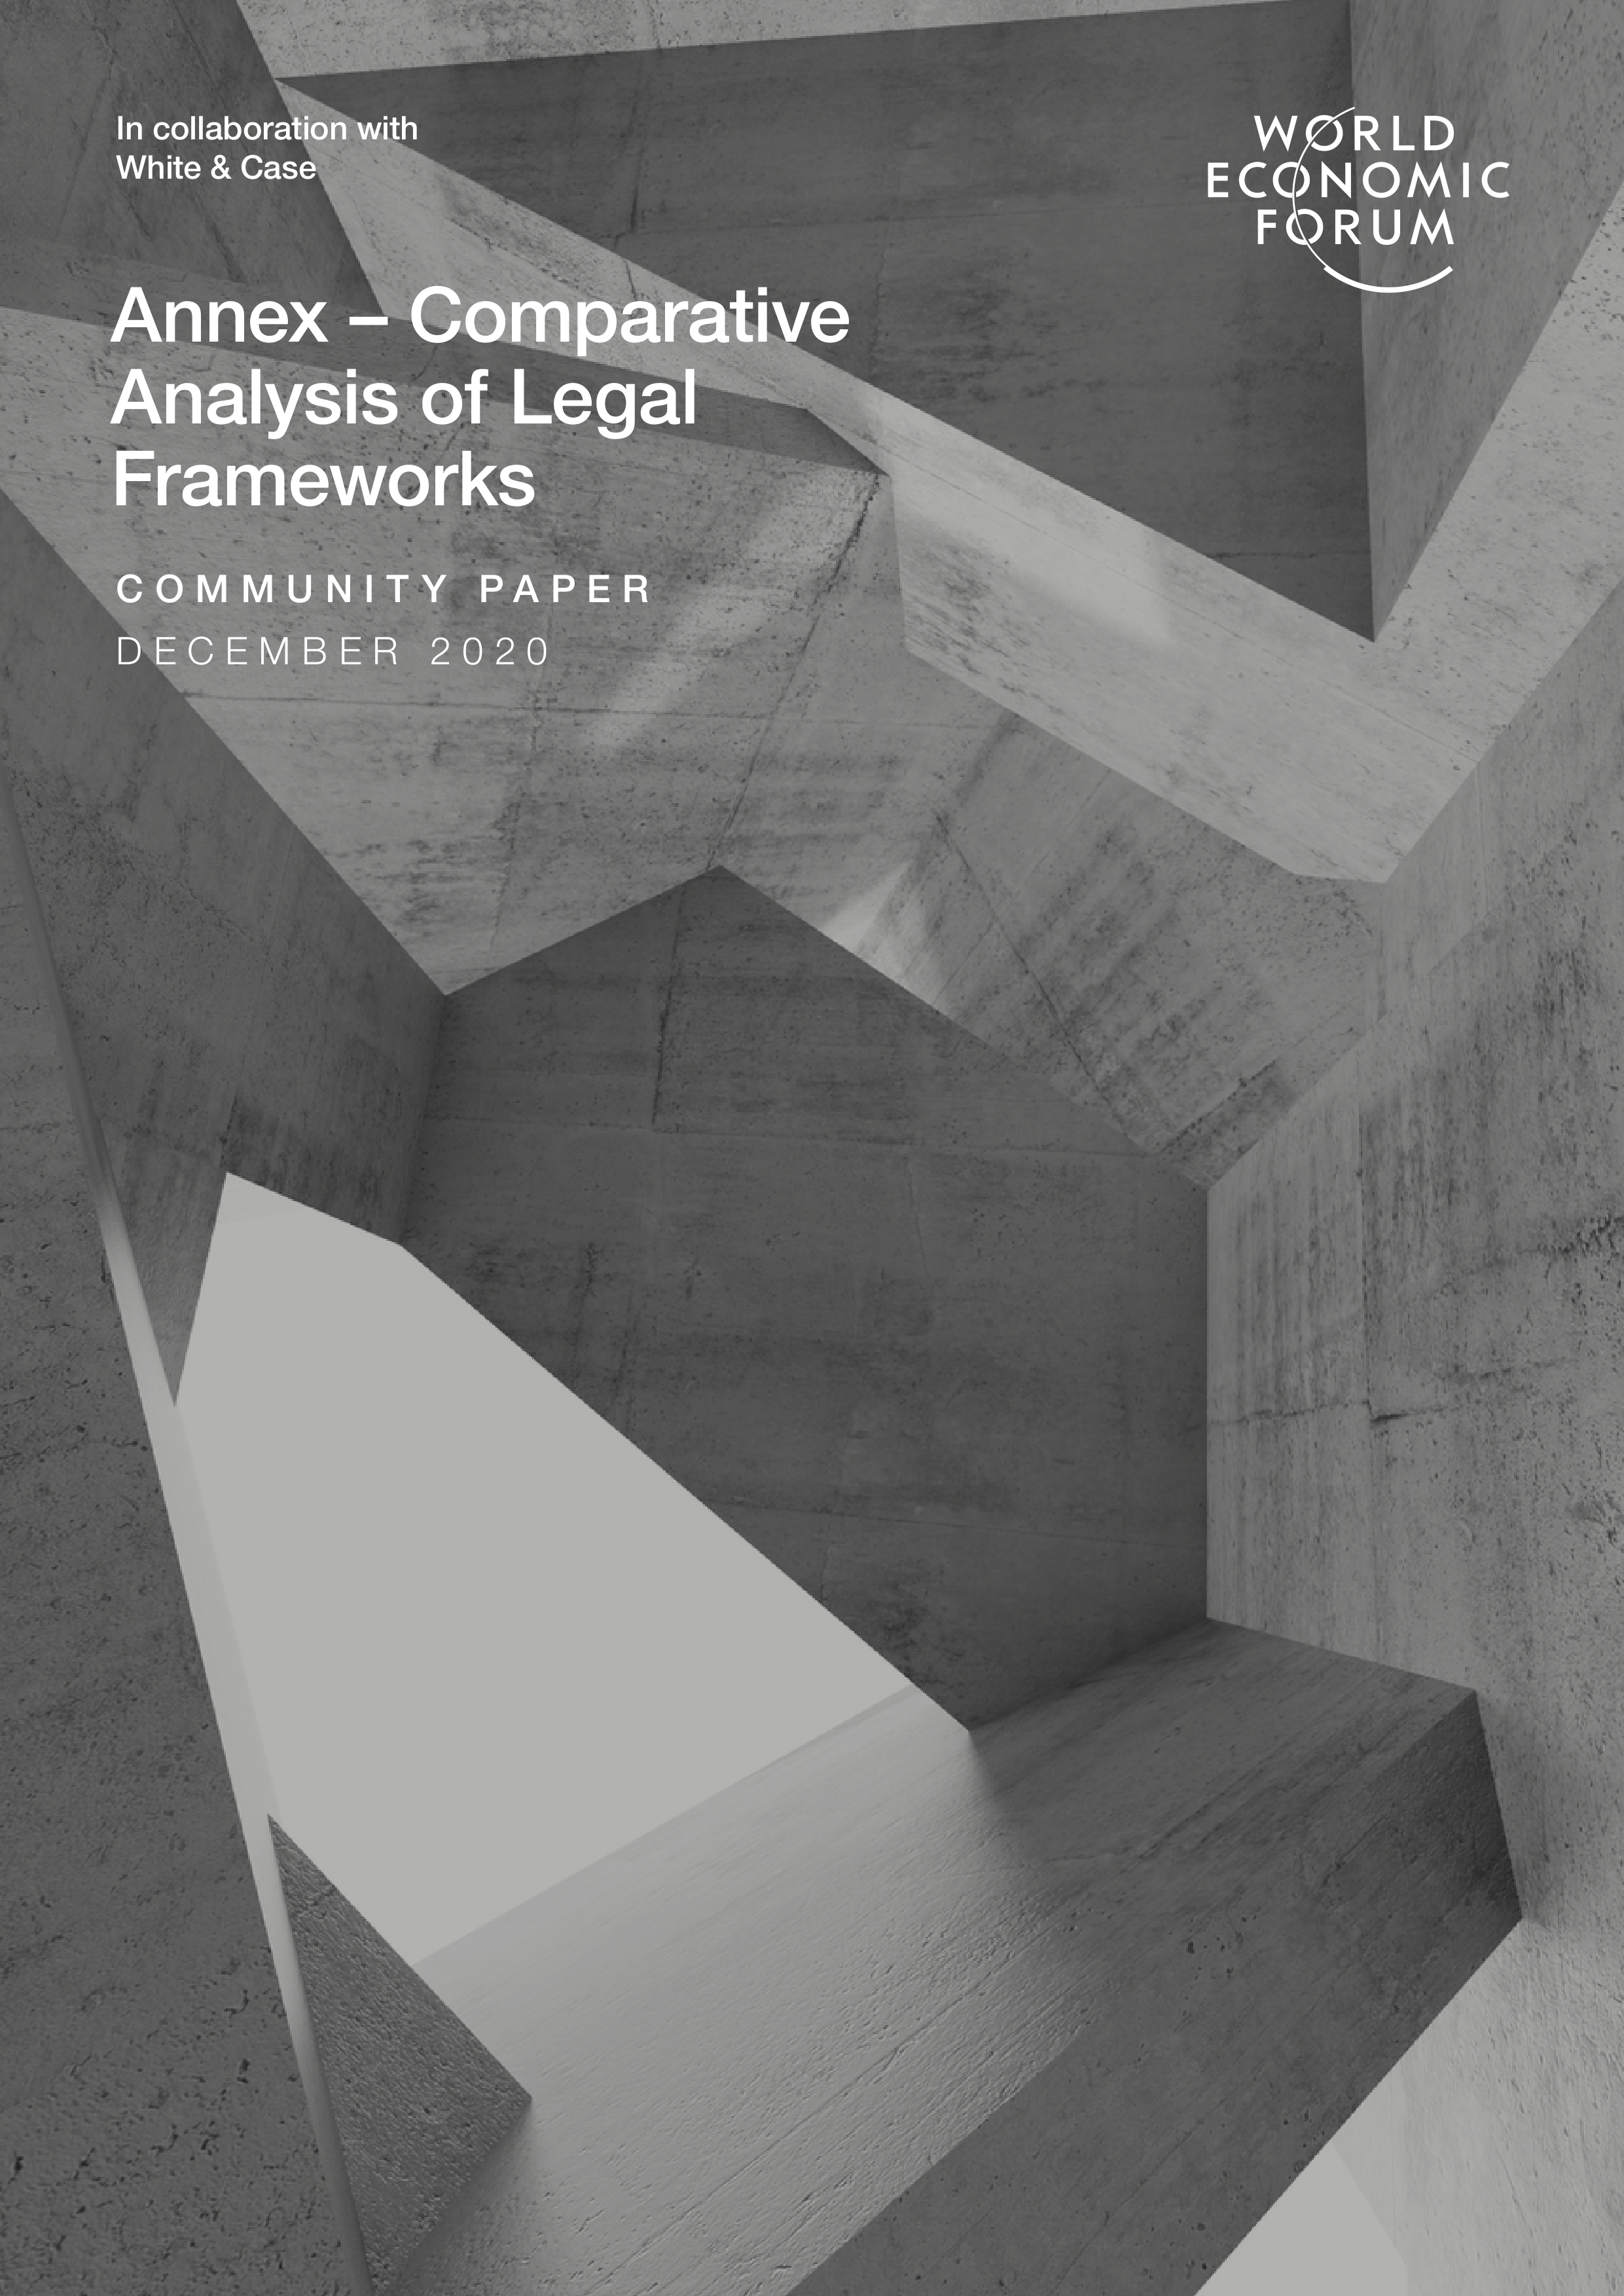 Annex – Comparative Analysis of Legal Frameworks, December 2020